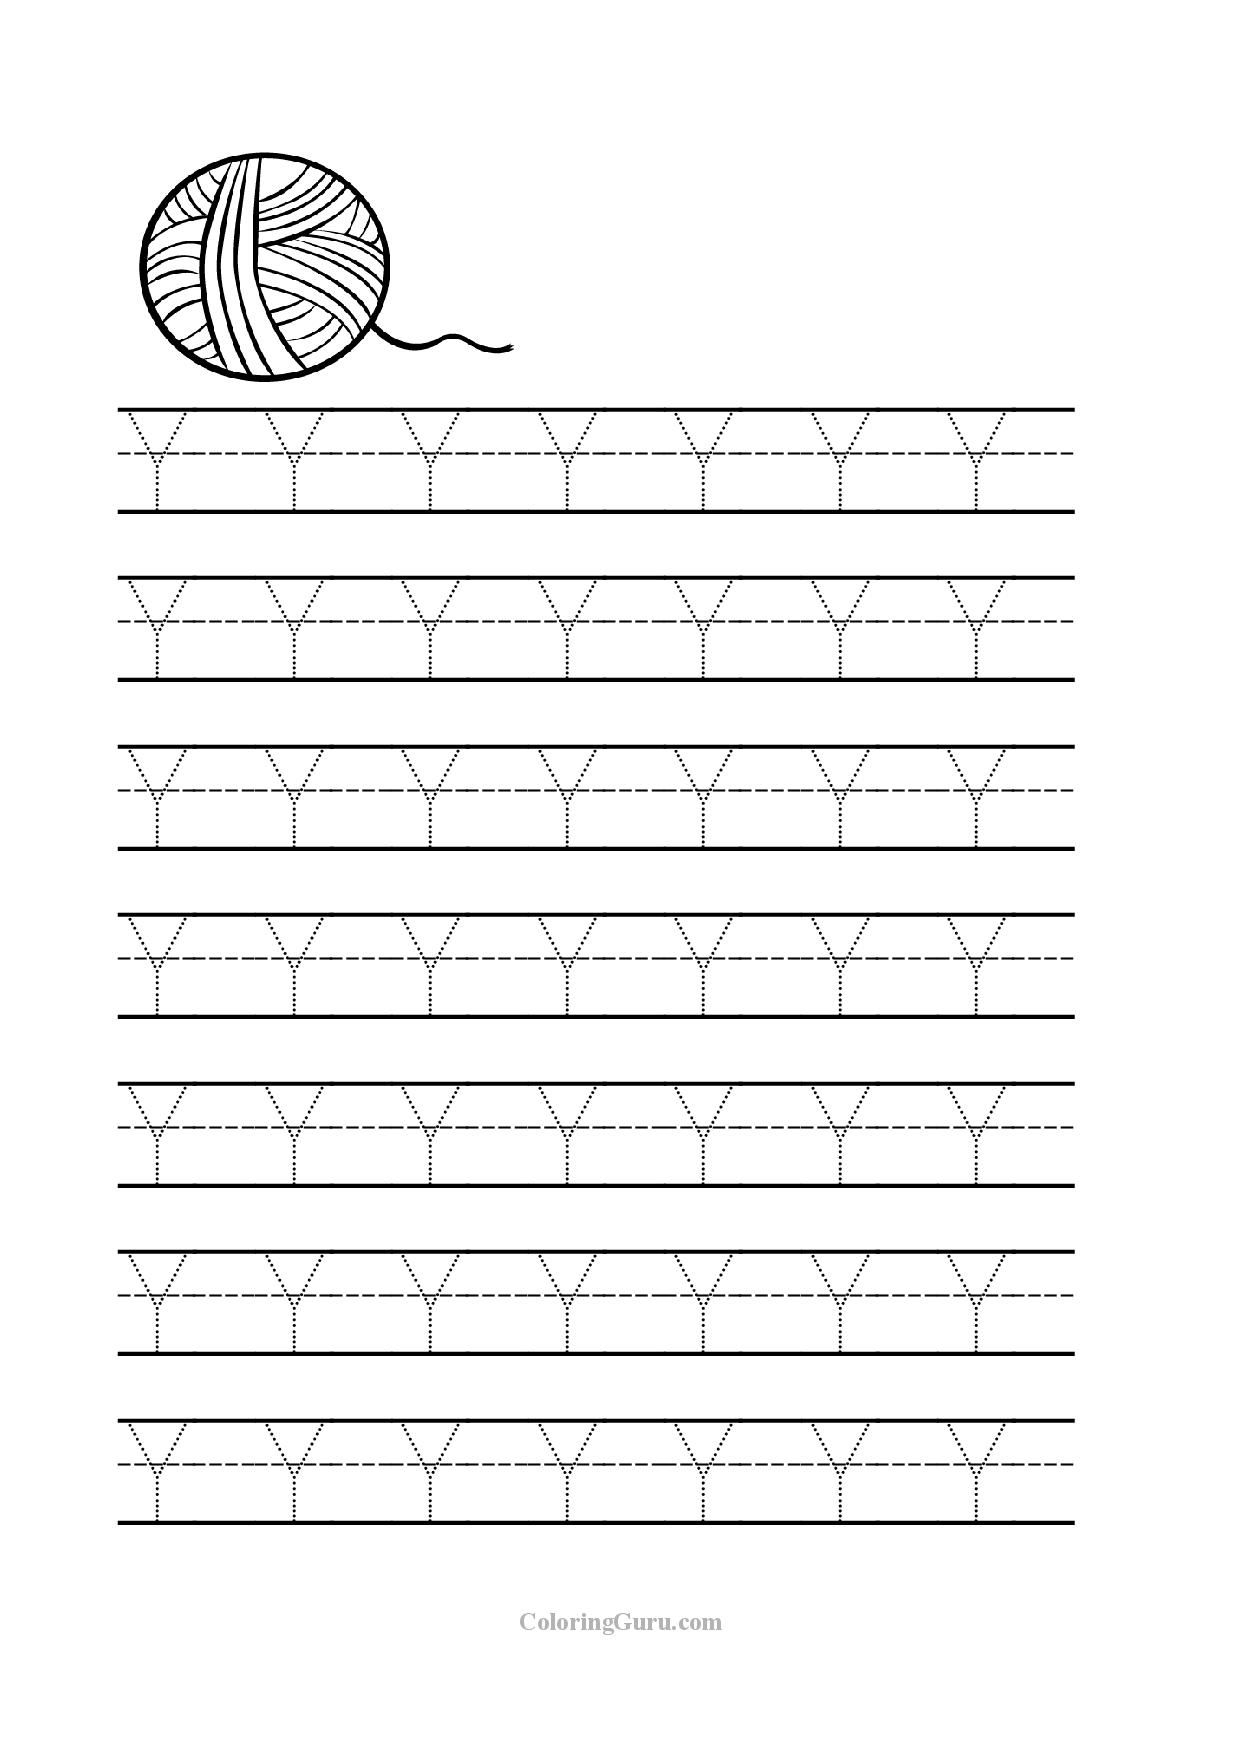 Free Printable Tracing Letter Y Worksheets For Preschool inside Tracing Alphabet Y